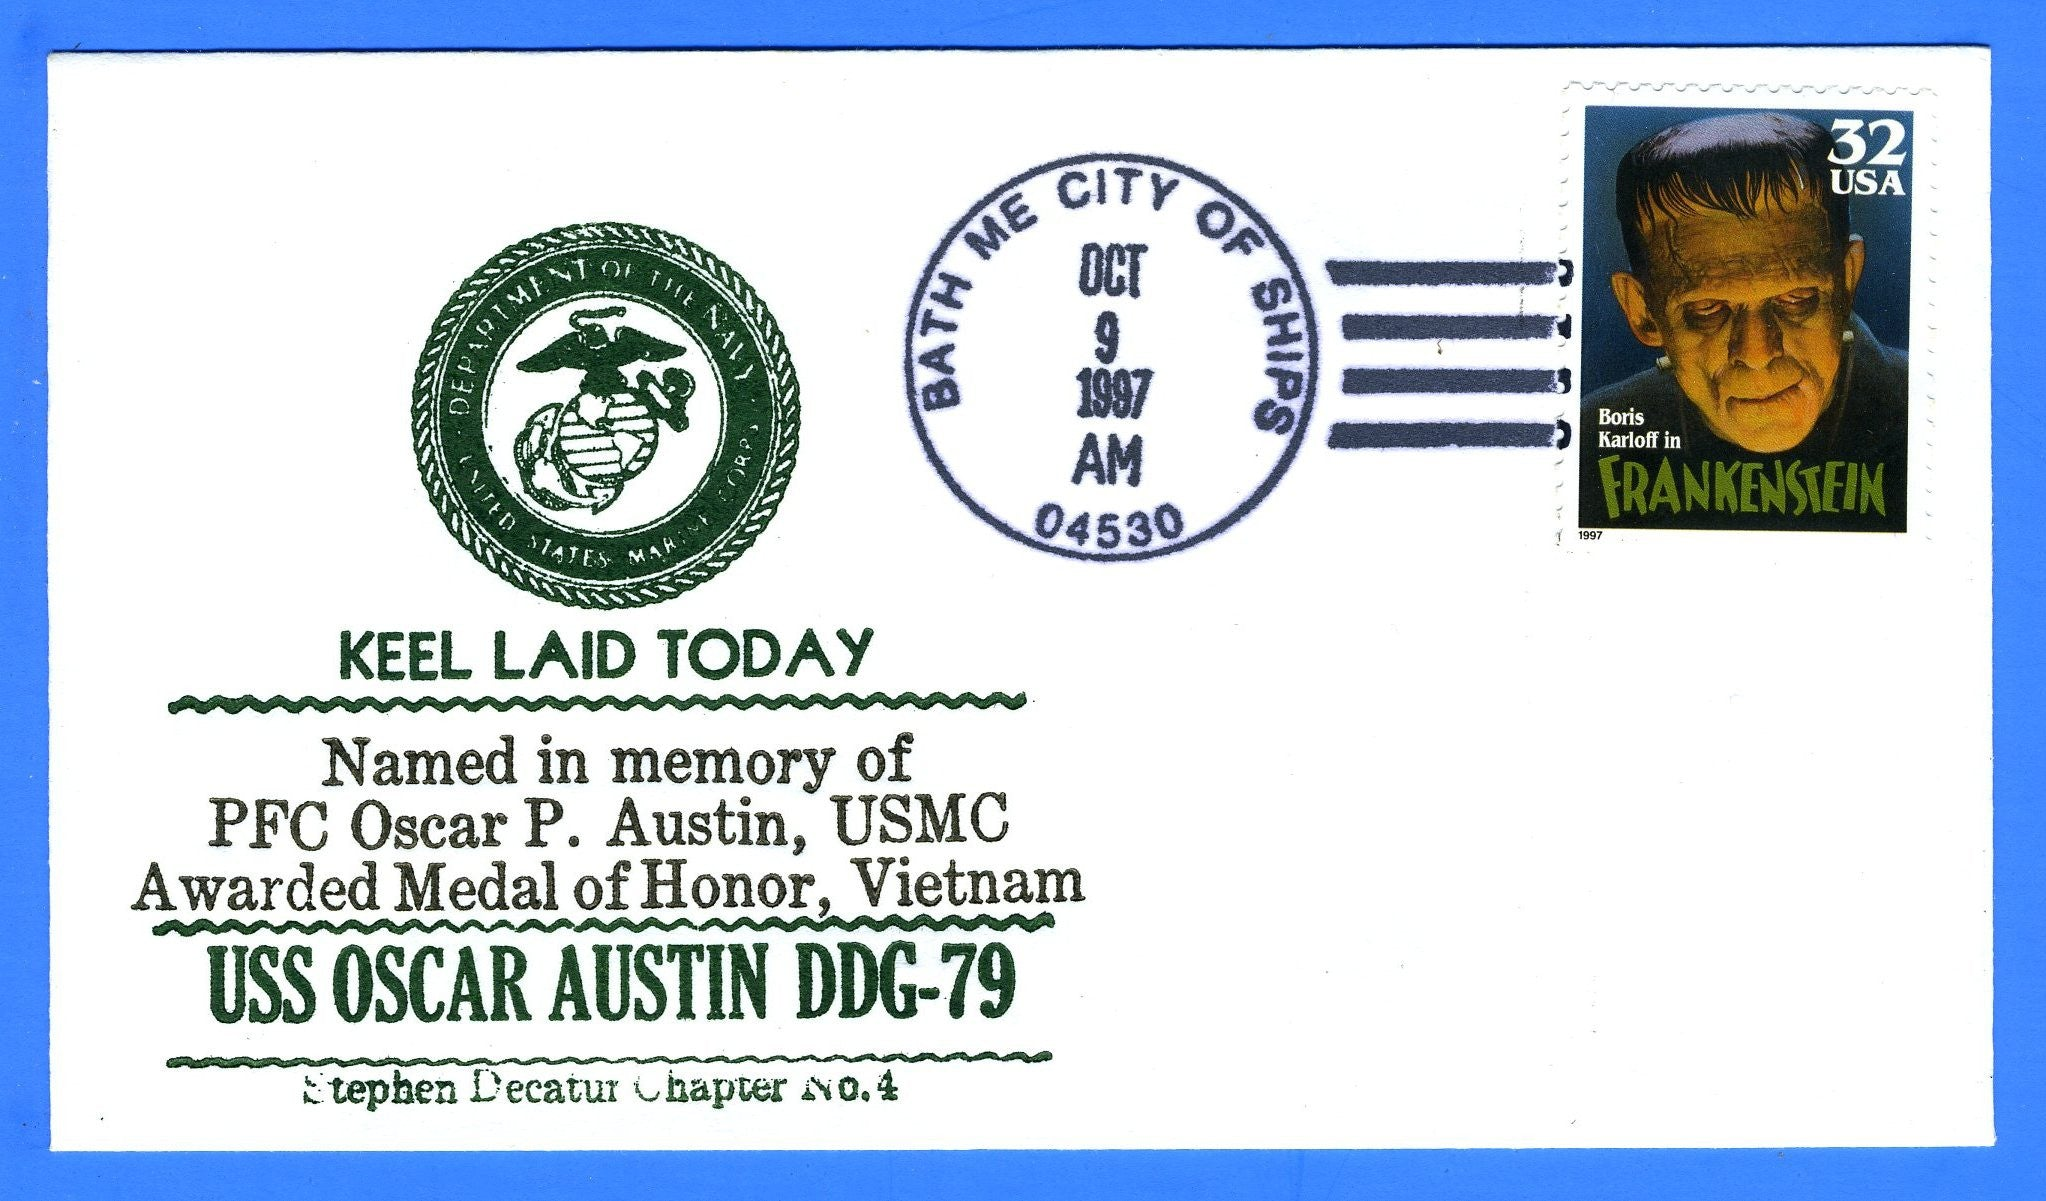 USS Oscar Austin DDG-79 Keel Laid October 9, 1997 - Cachet by USS Decatur Chapter No. 4, USCS